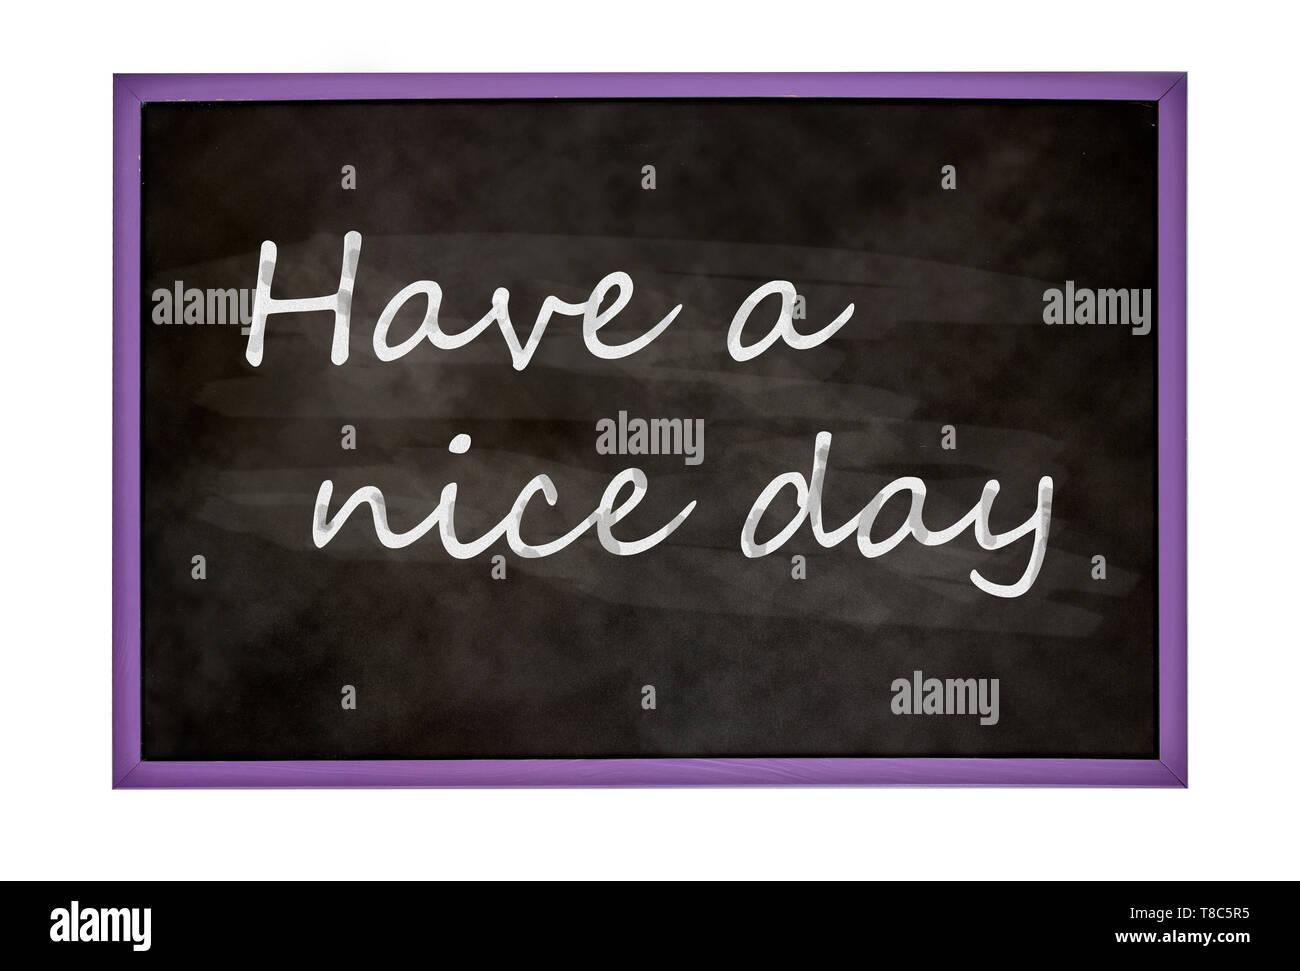 Have a nice day text on blackboard ilustration - Stock Image